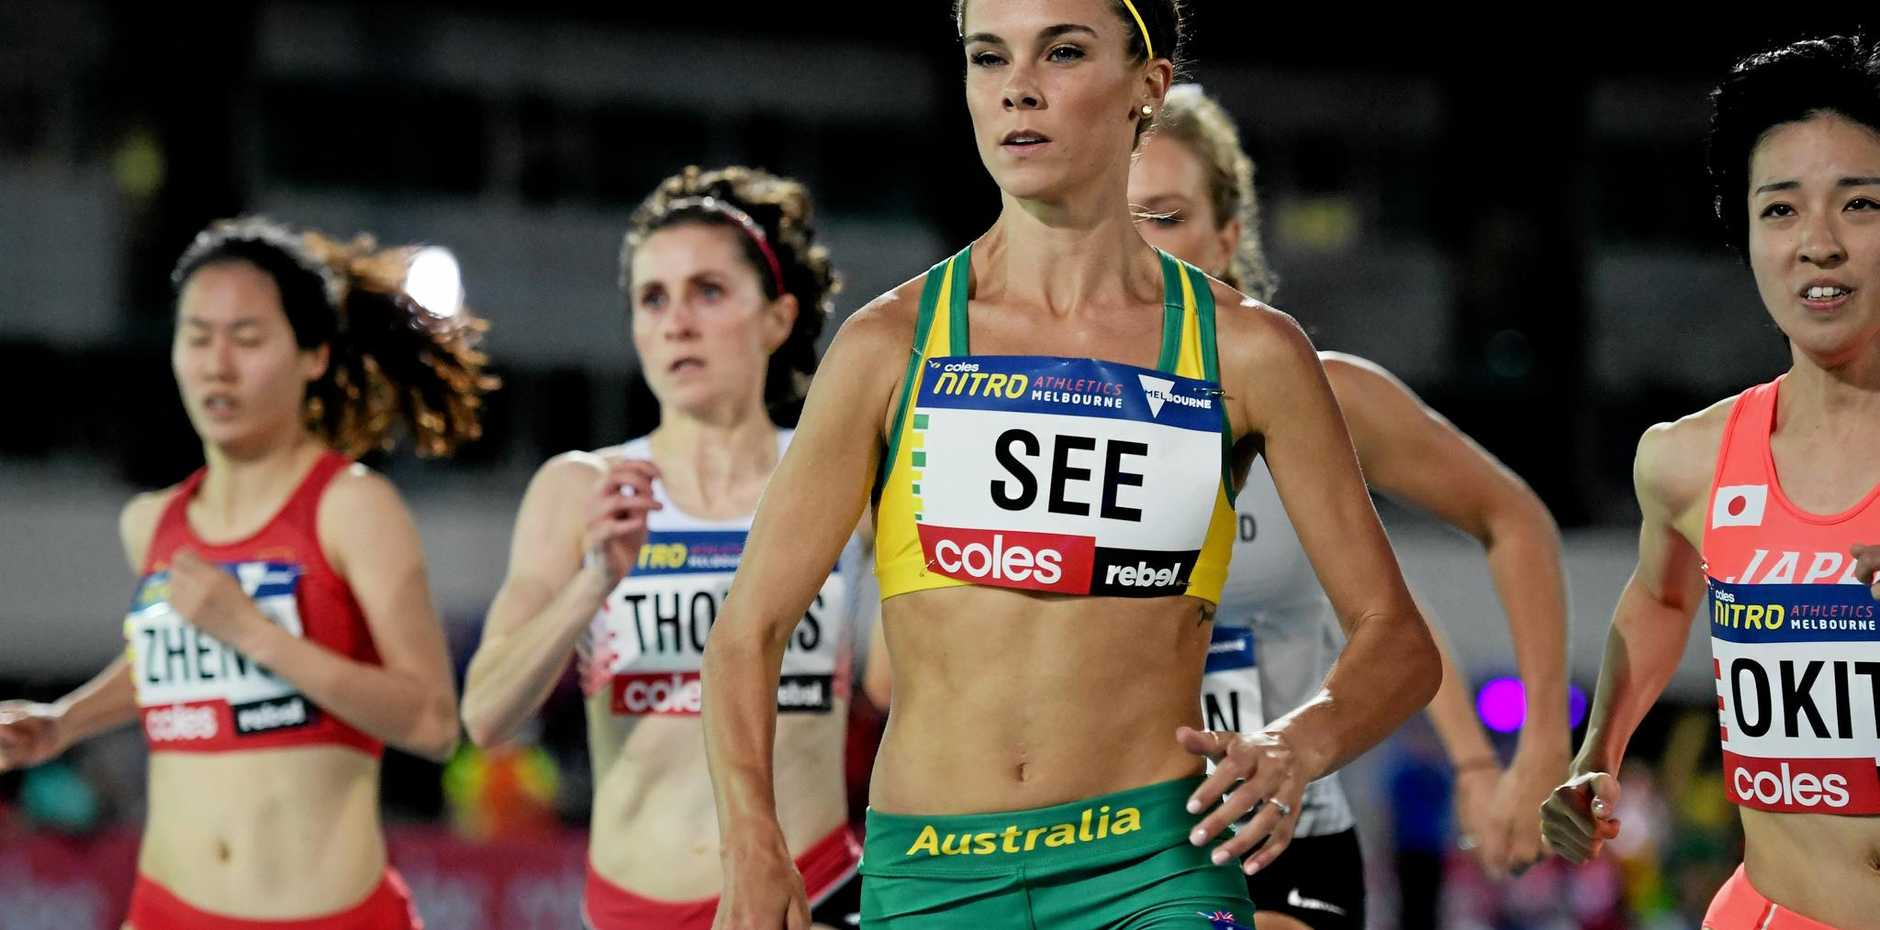 Australian athlete Heidi See in the women's one-mile run at the Nitro Athletics meet at Lakeside Stadium in Melbourne.